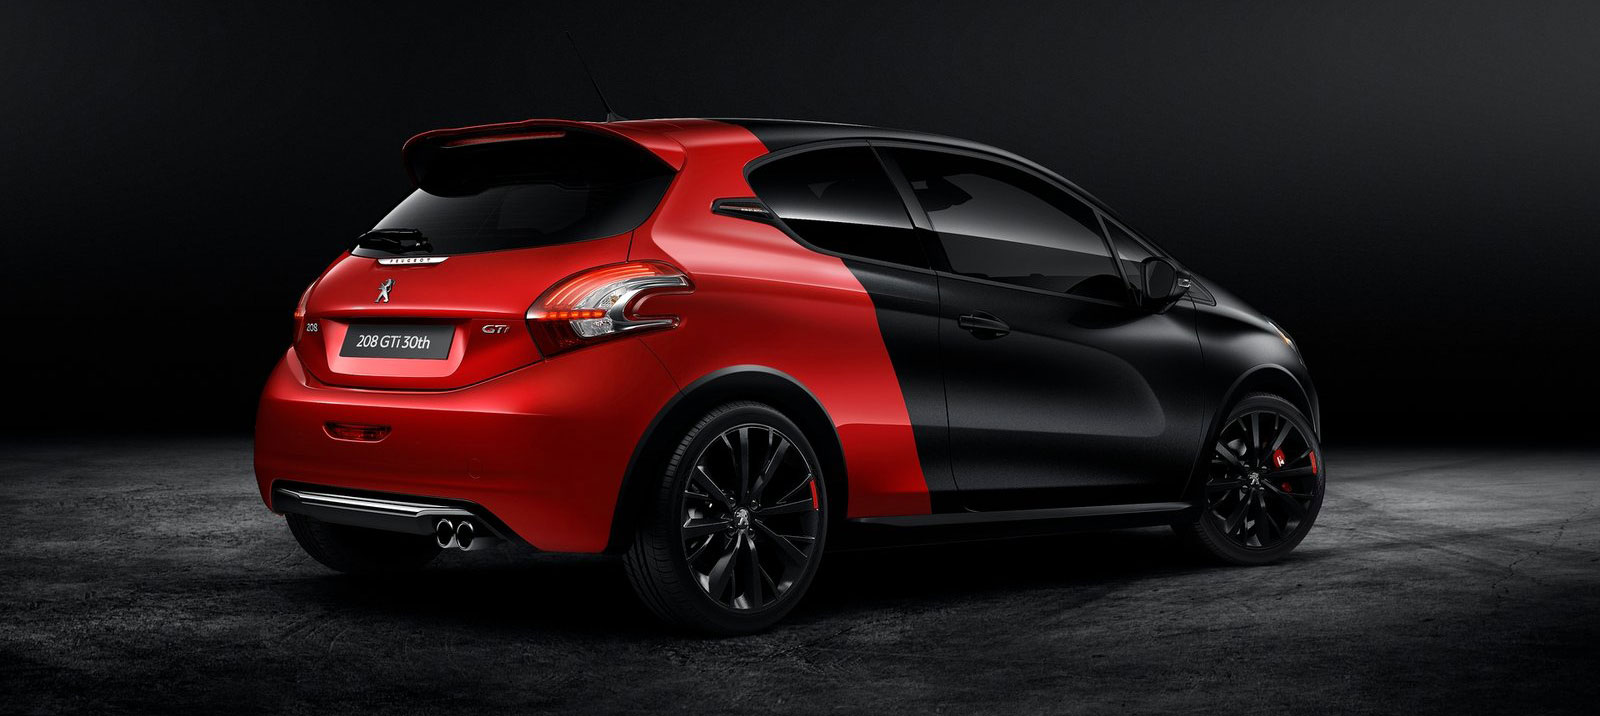 peugeot 208 gti 30th anniversary 208 hp 300 nm. Black Bedroom Furniture Sets. Home Design Ideas